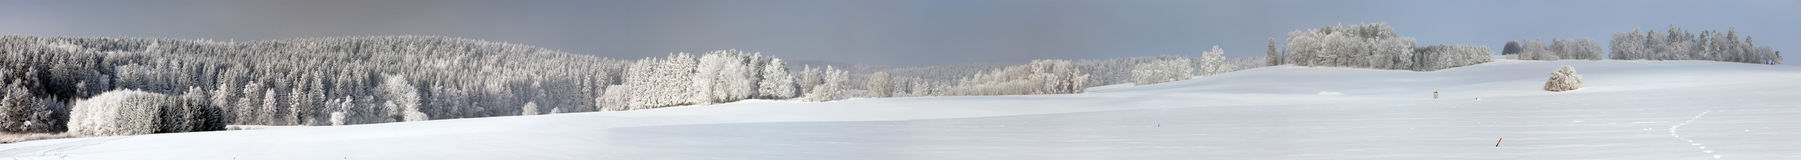 Wintry view from Bohemian and Moravian highlands. White frost on forest trees and snow cowered field Stock Photos